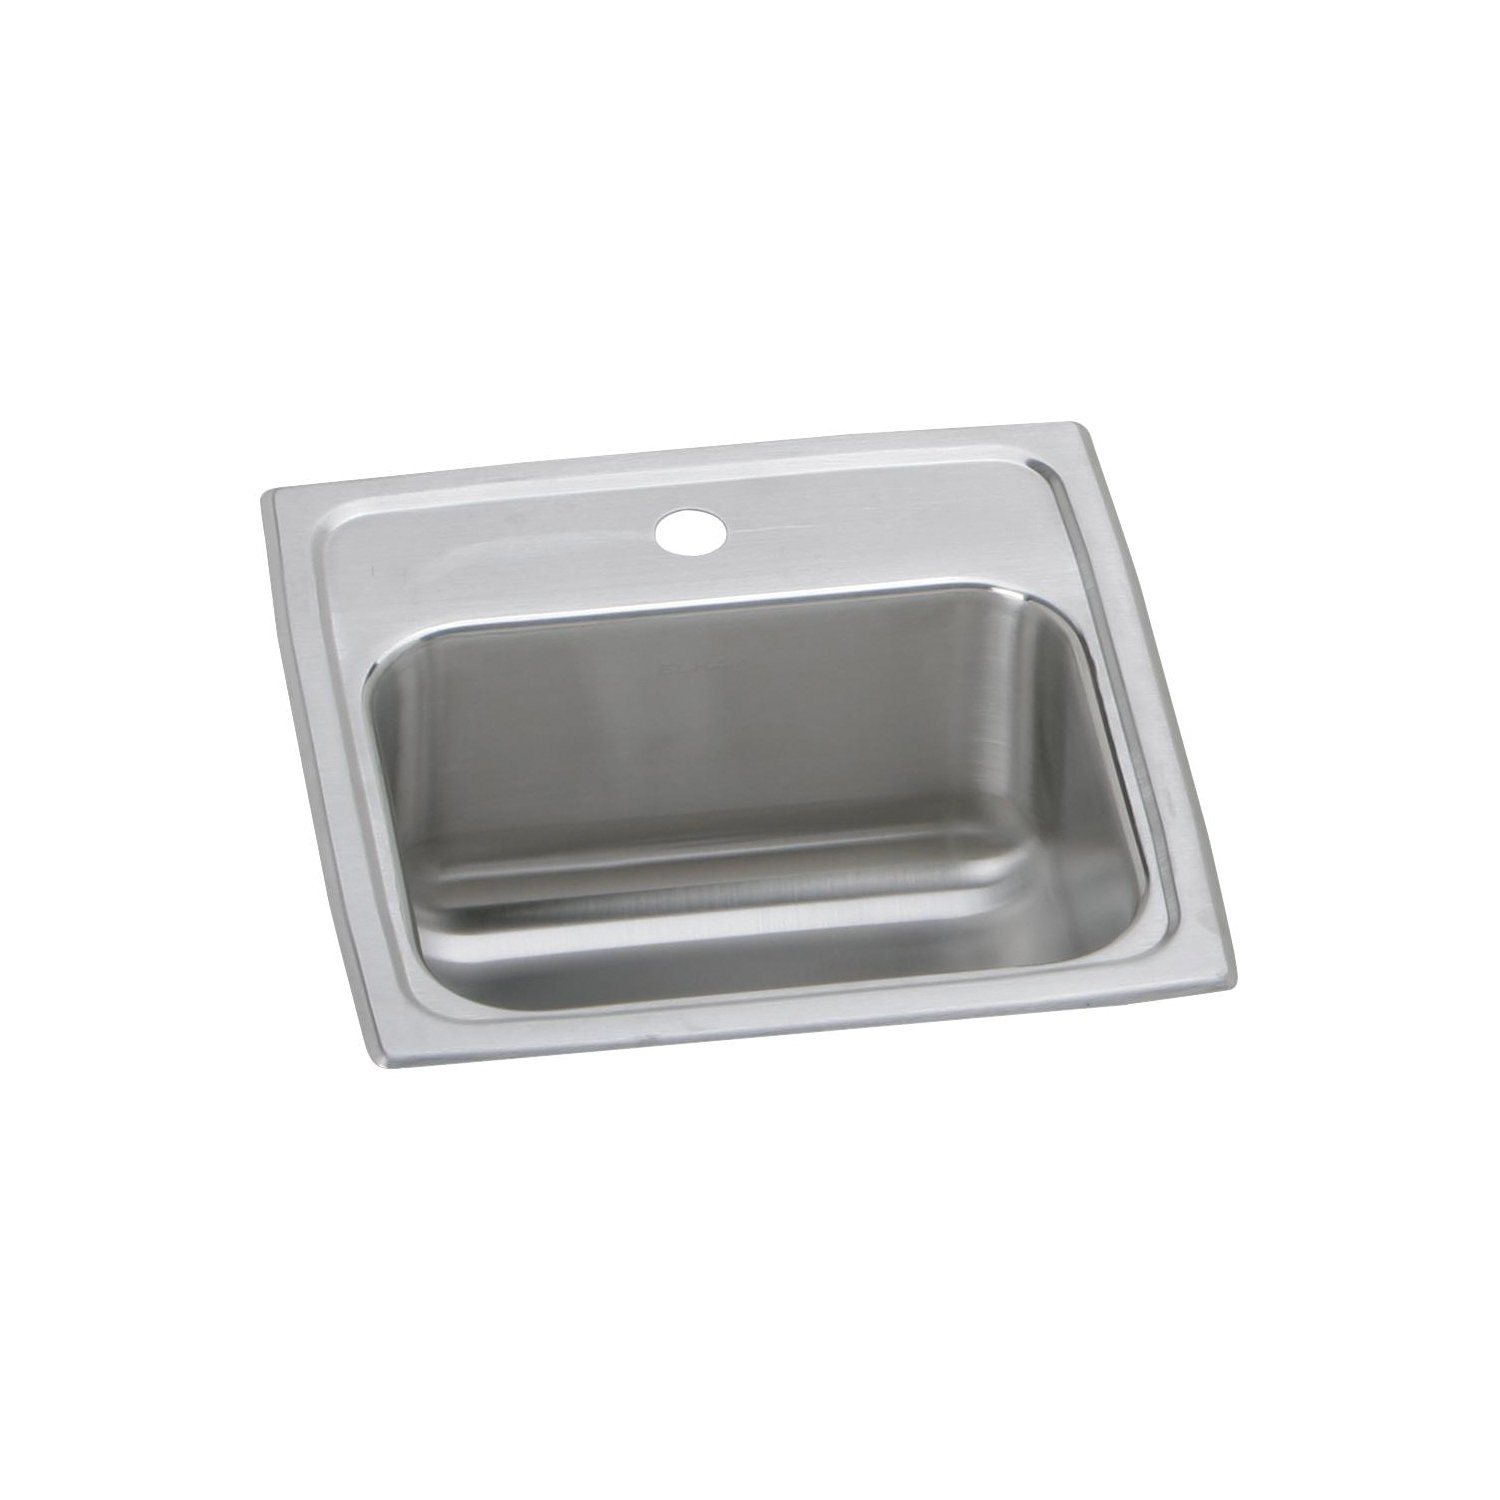 Elkay® BLR152 Gourmet Bar Sink, Square, 2 Faucet Holes, 15 in W x 15 in D x 7-1/8 in H, Top Mount, Stainless Steel, Lustertone, Domestic